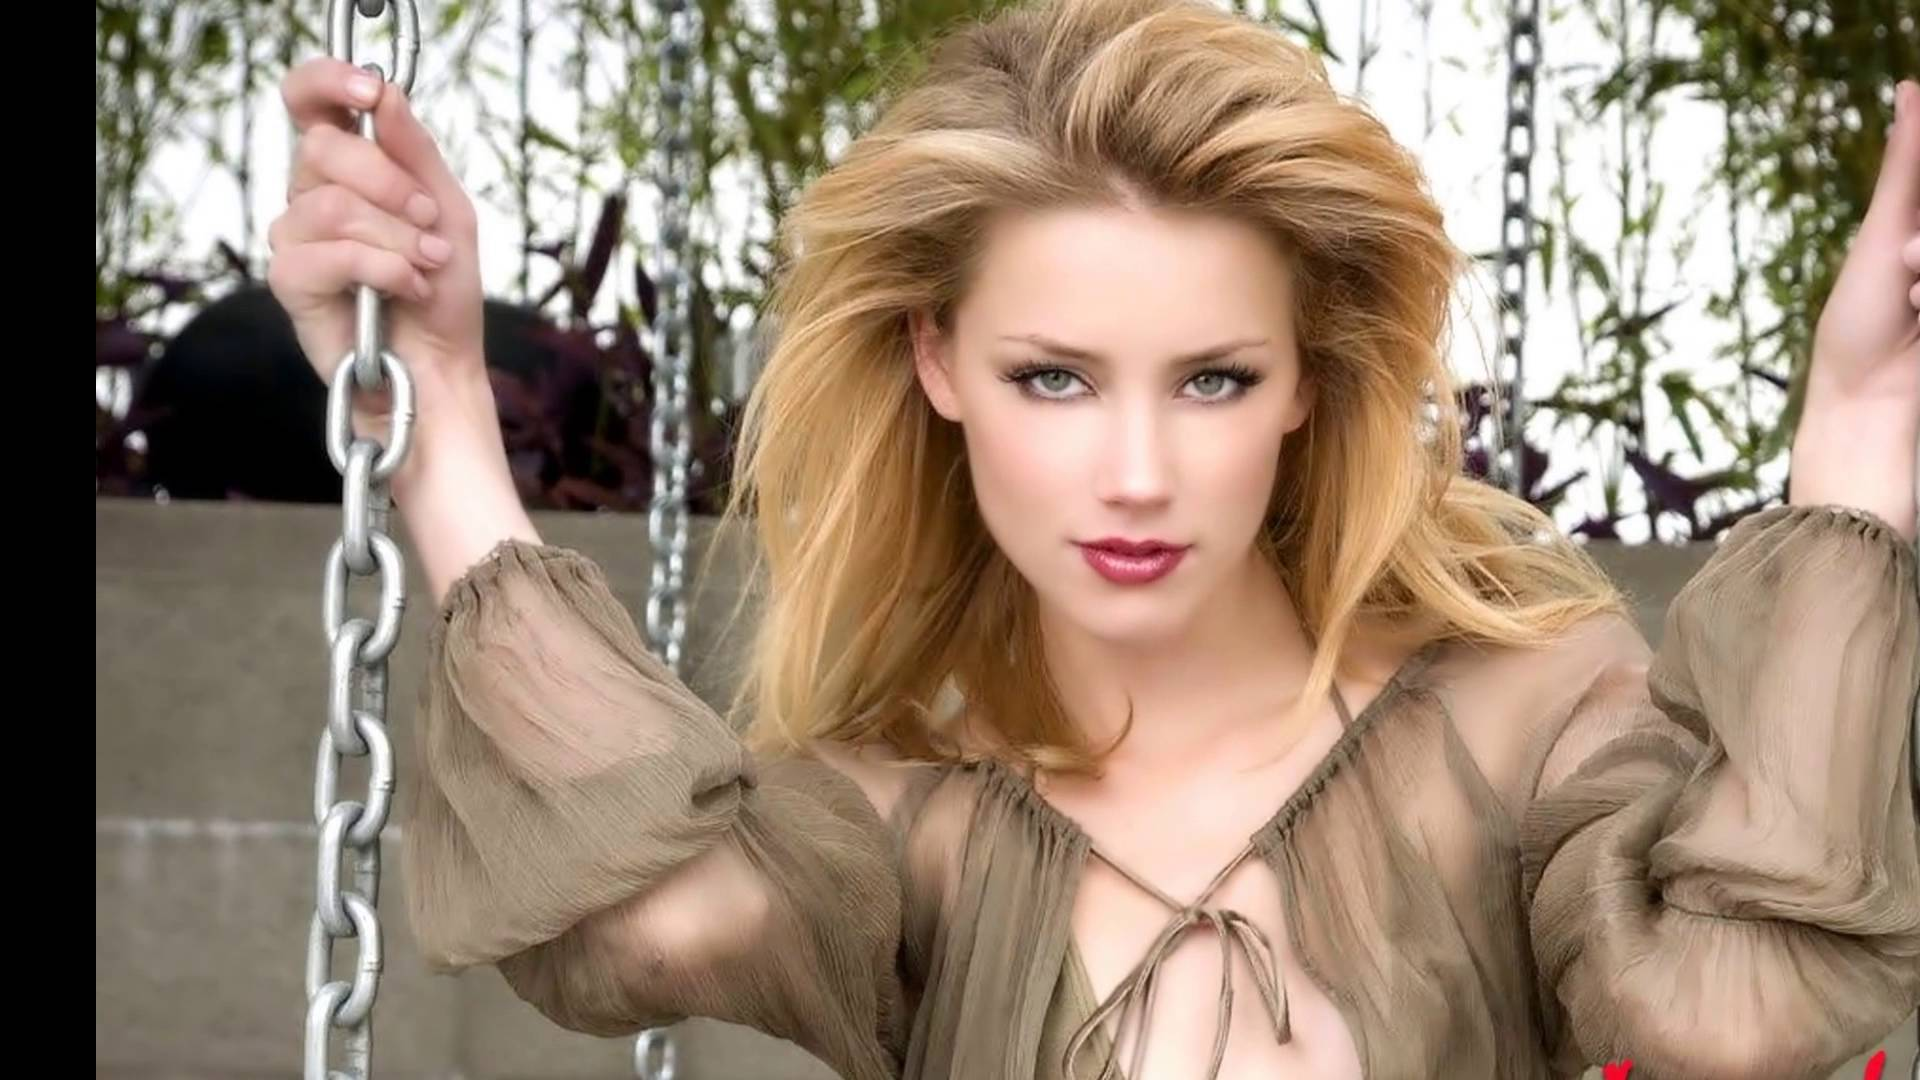 hollywood actress wallpapers wallpaper cave